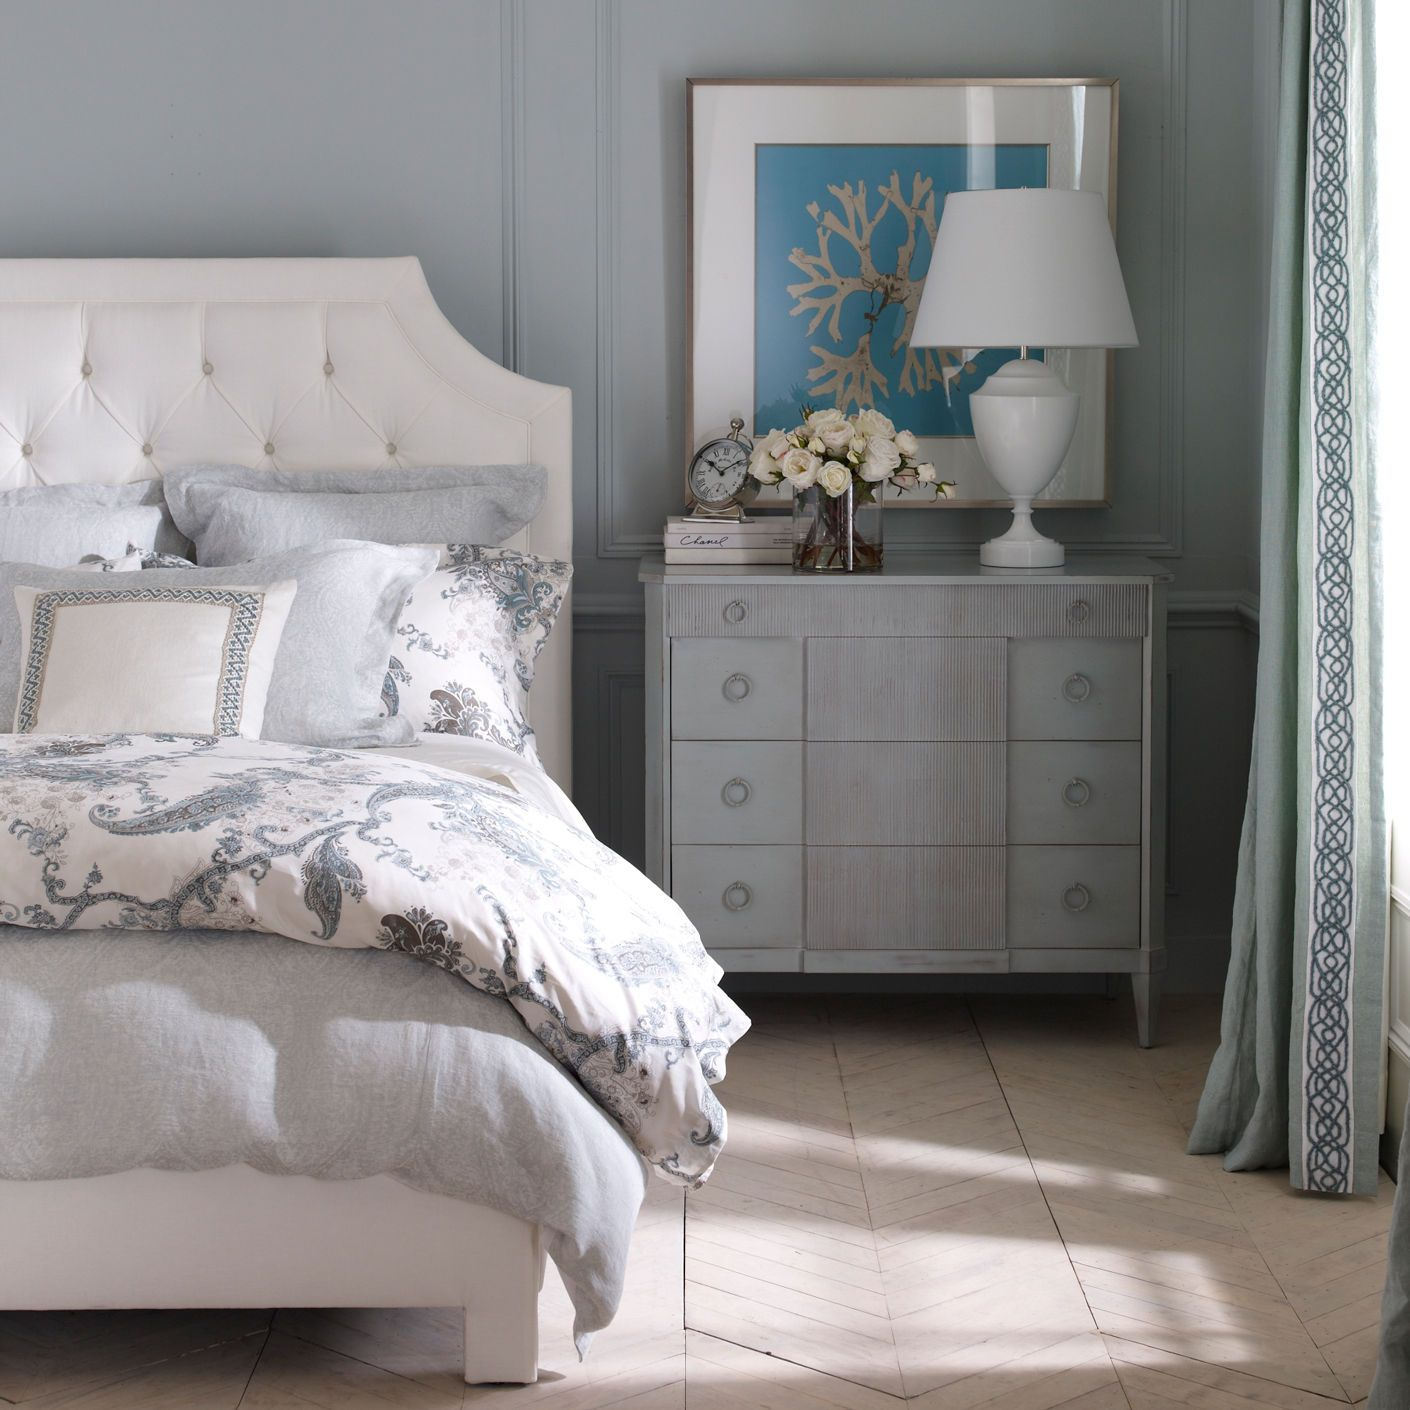 Ethan Allen Towson - Wynsome Paisley Duvet Cover - Ethan ...